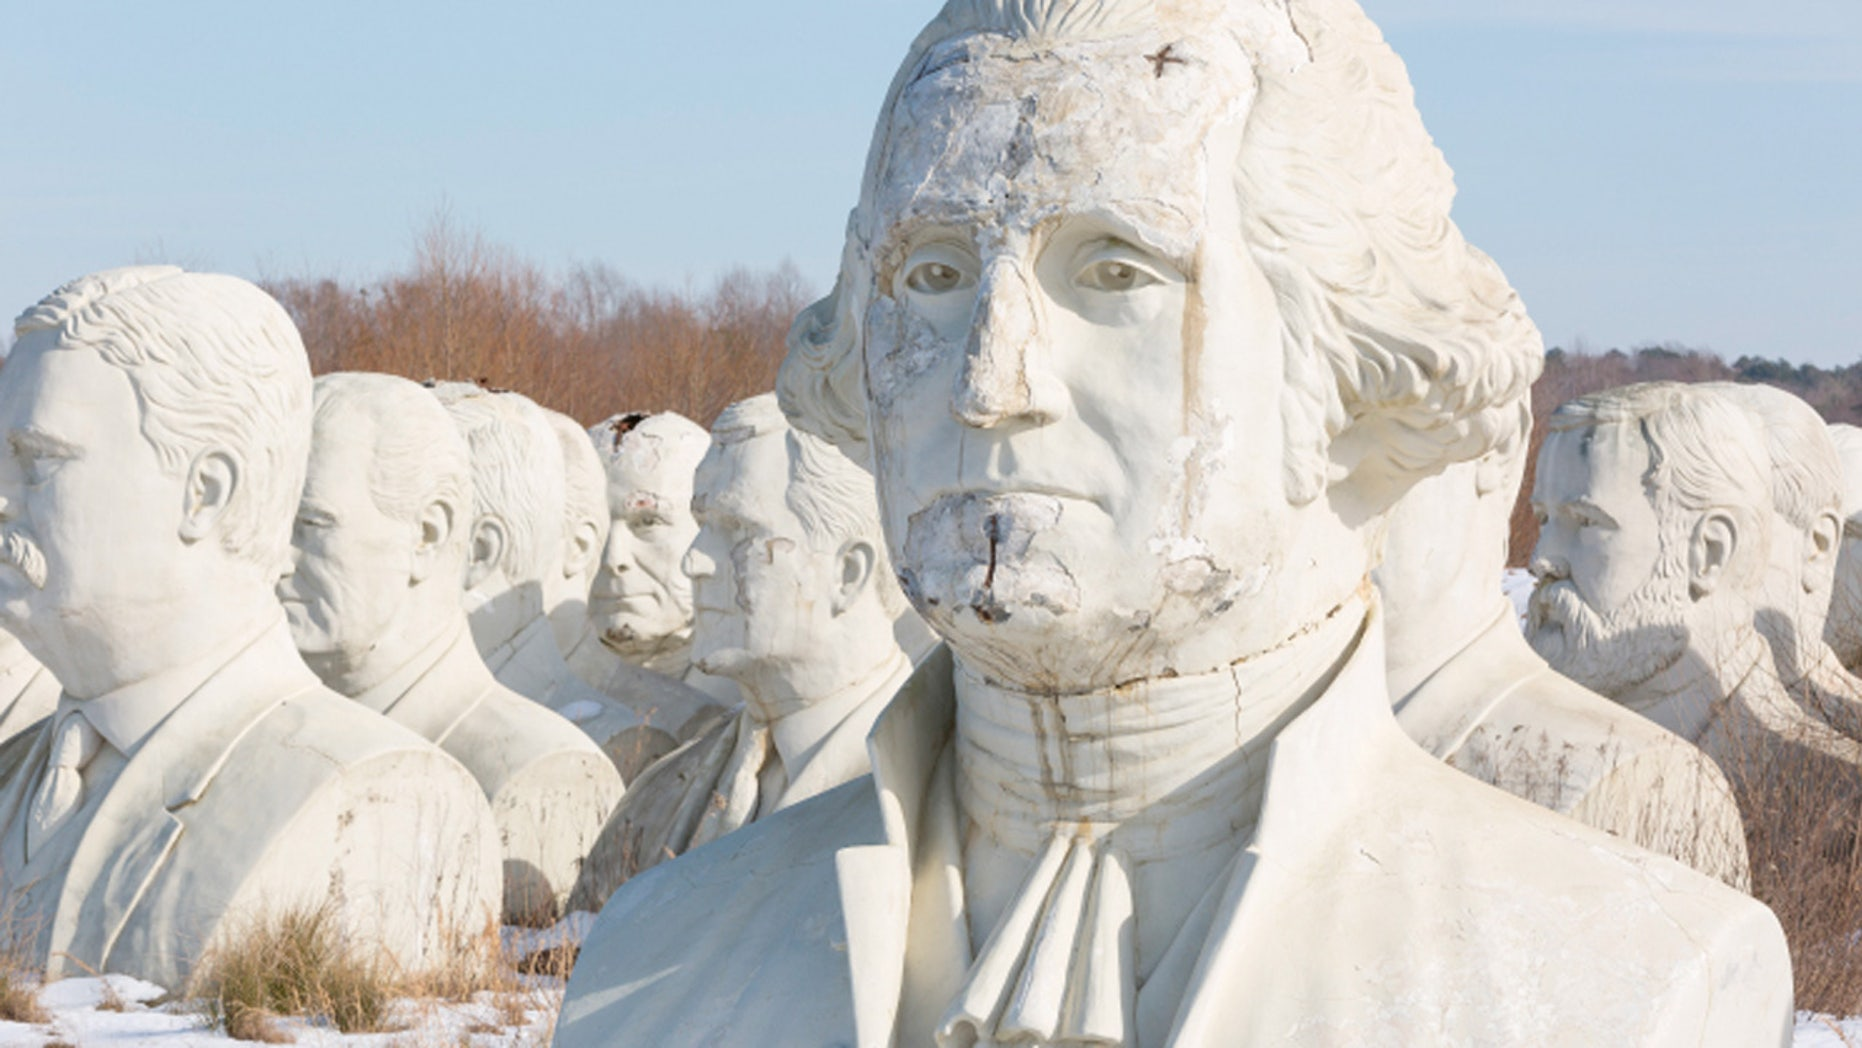 Some 150 miles south of Washington, DC on a patch of farmland in Croaker, Virginia, stands 43 giant heads of United States presidents.